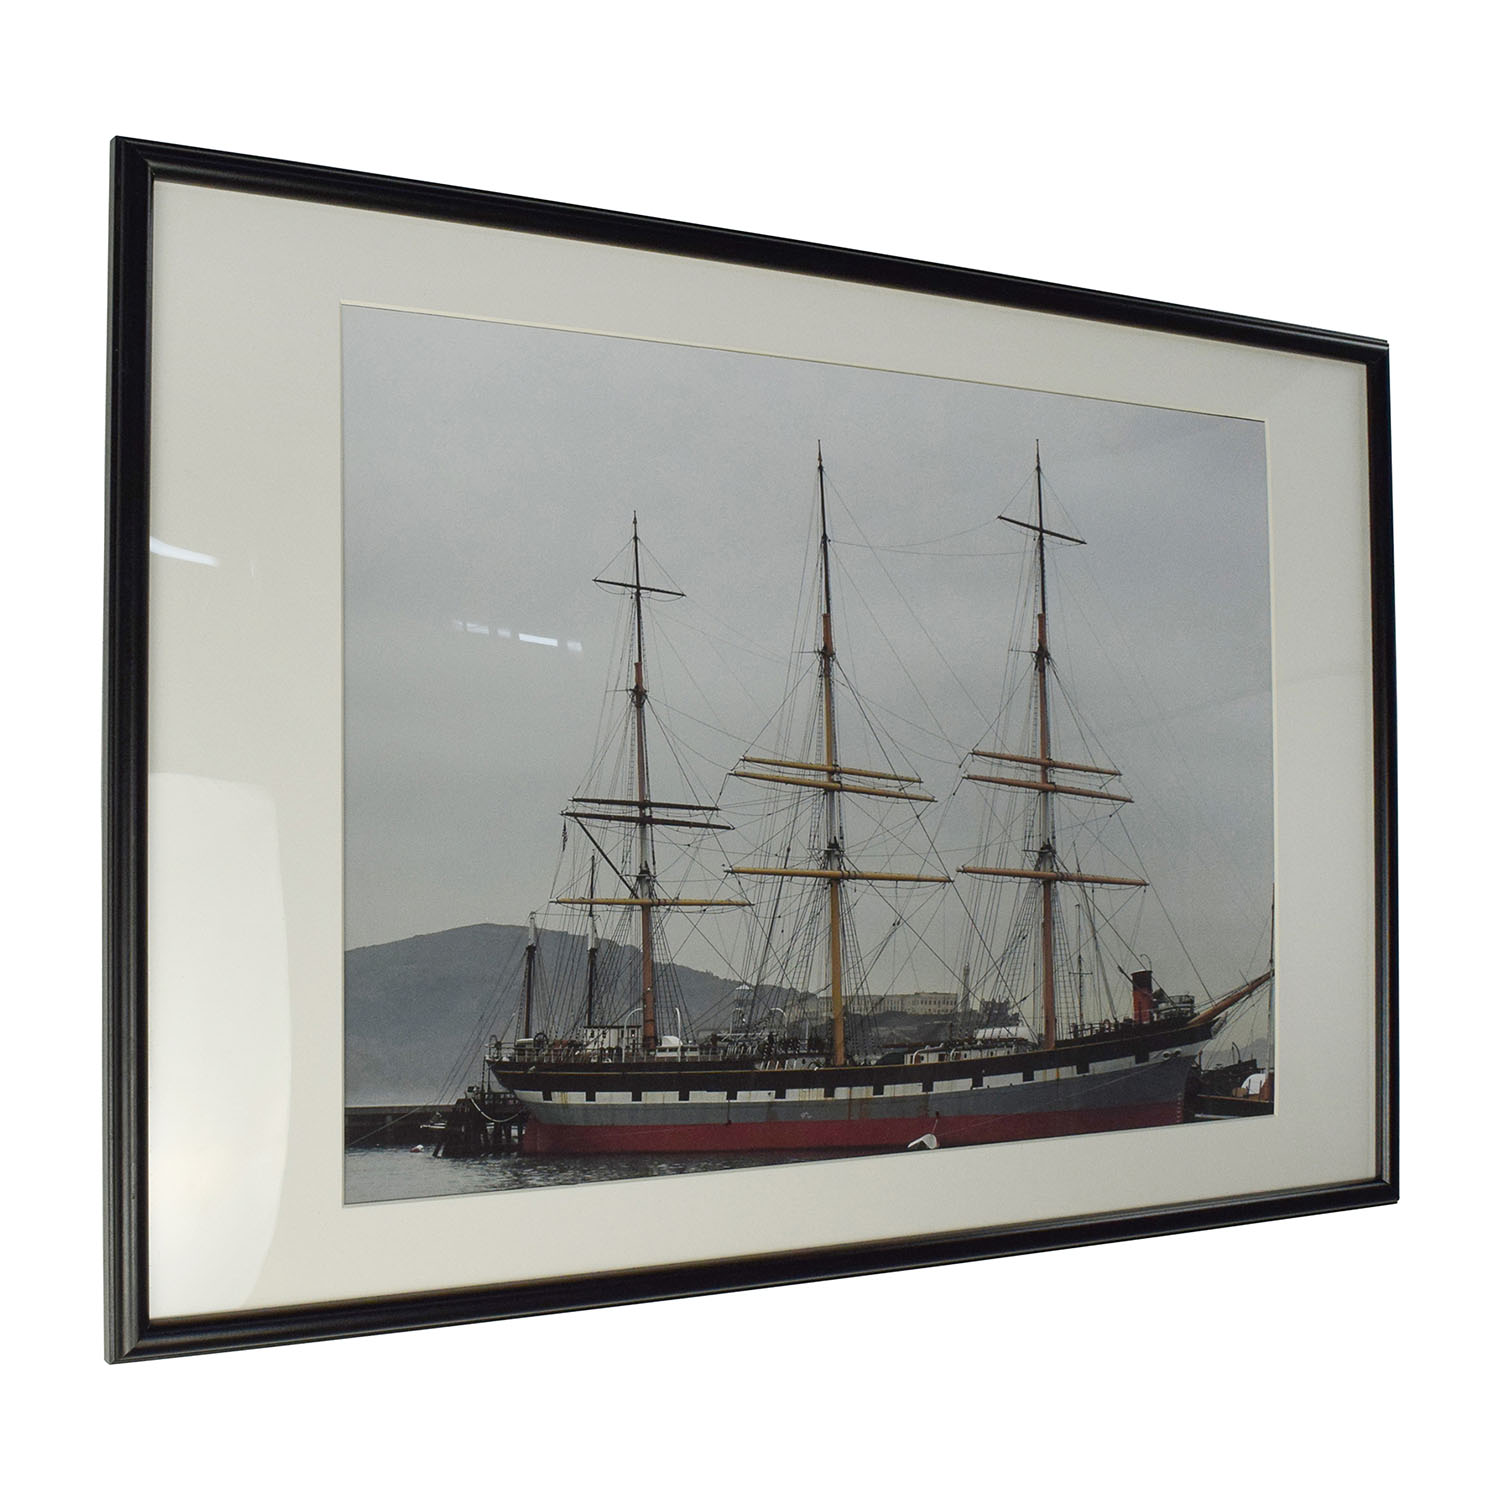 Get fast, free shipping with Amazon PrimeExplore Amazon Devices· Shop Our Huge Selection· Fast Shipping· Deals of the DayBrands: RedSkyTrader, ThunderBolt Paper, Art Prints Inc and more.